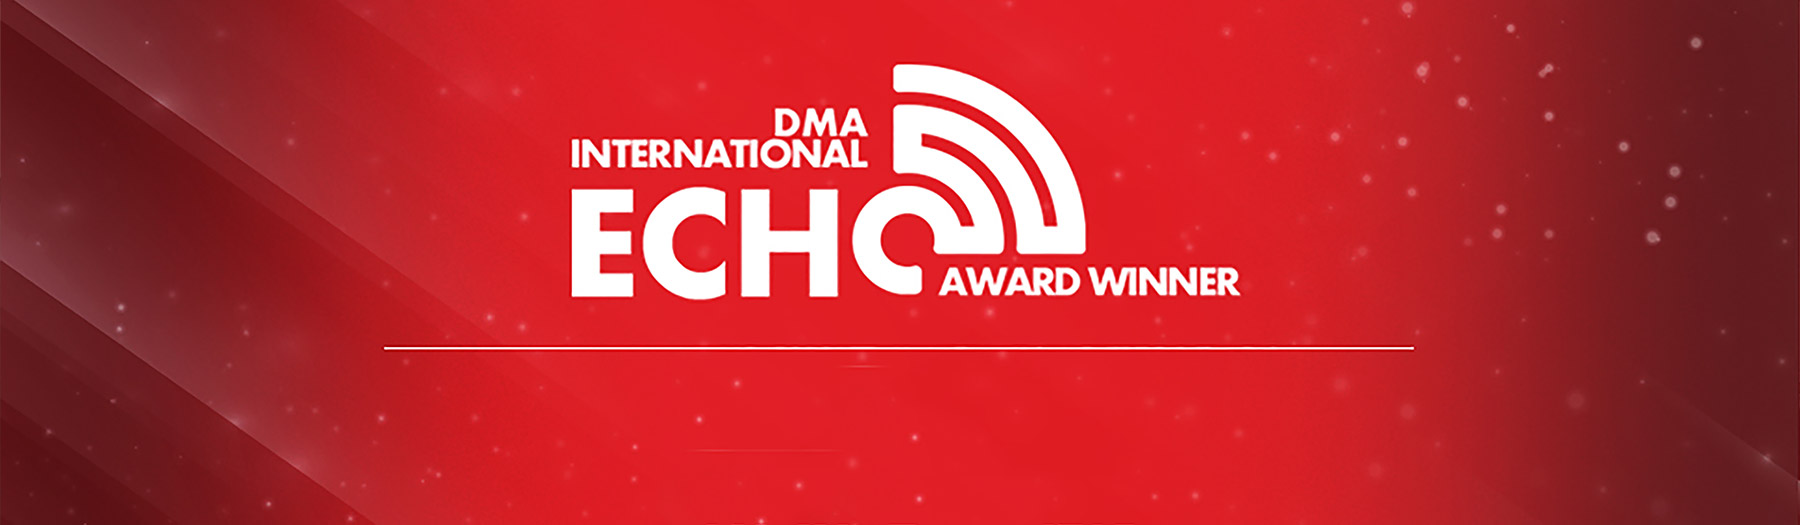 BlackWing Creative Scores a DMA 2016 International ECHO Award.